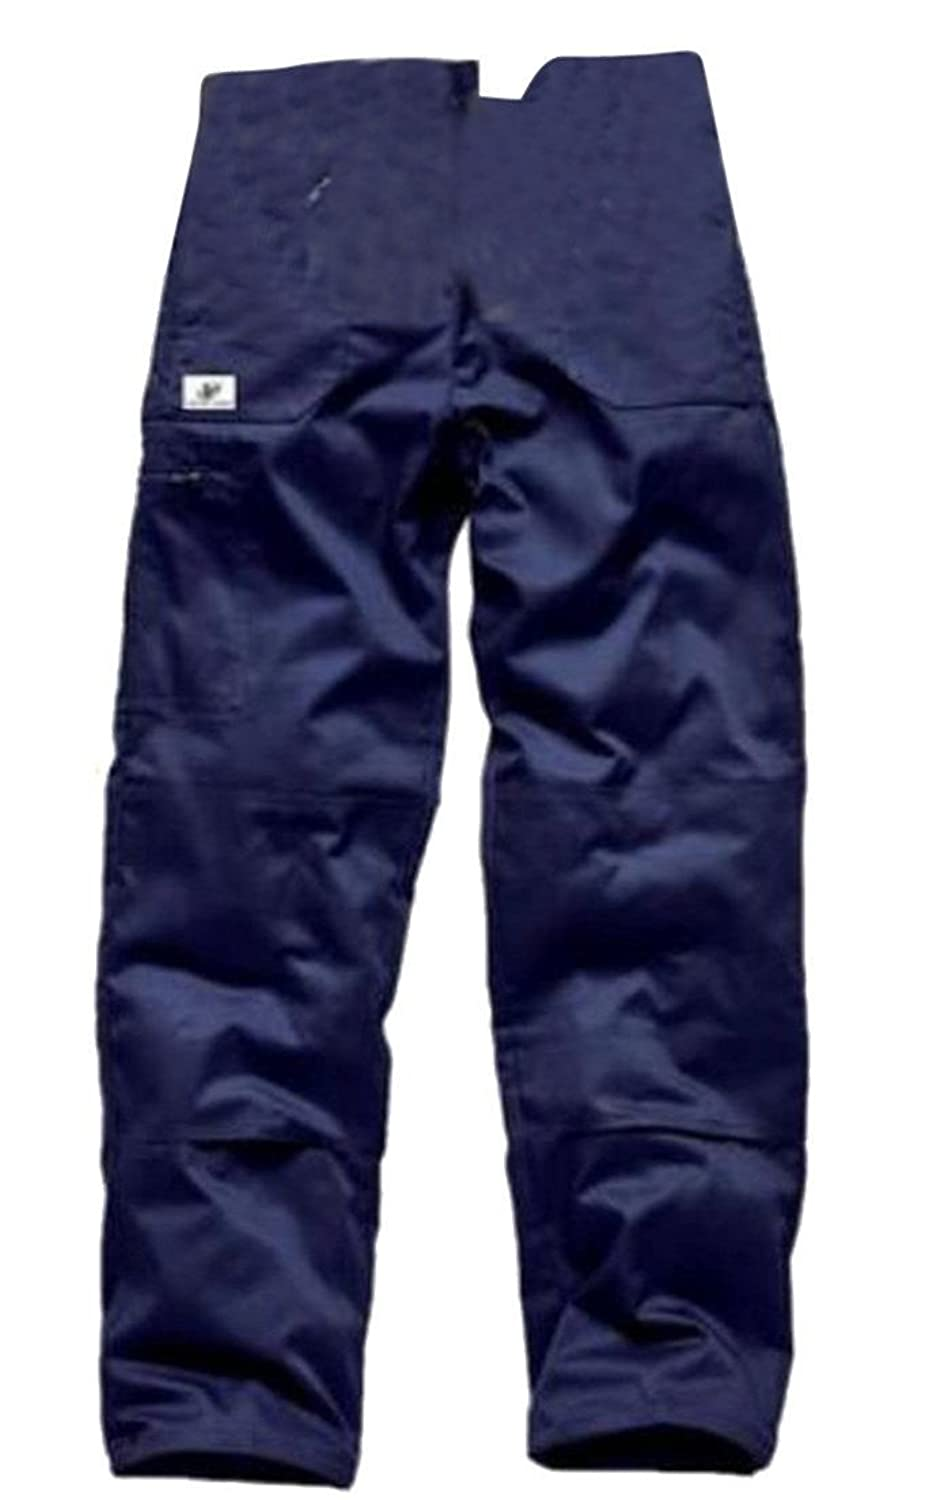 ad61b012d7e0 Abepanic Men s Relaxed Fit Cargo Pockets Twill Tactical Outdoor Pants